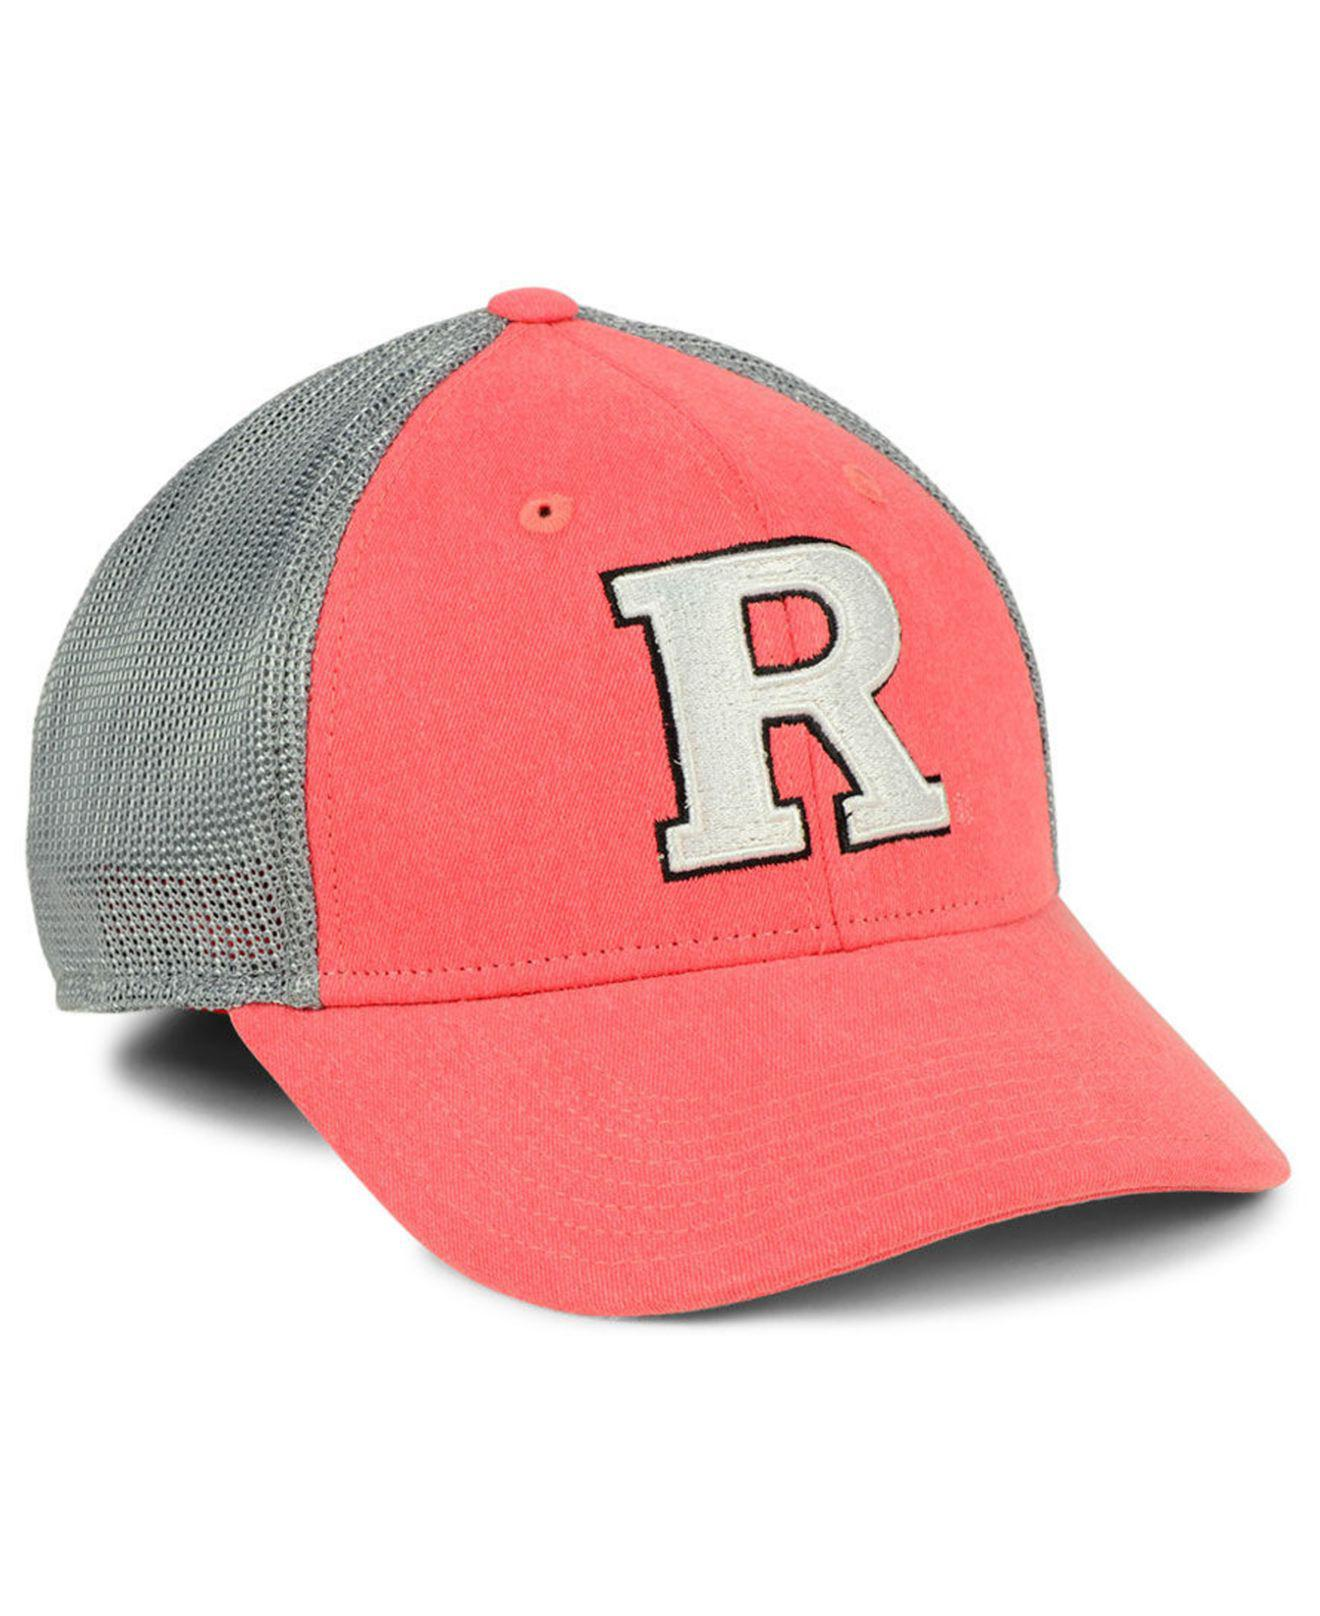 01a16c6a985 Lyst - adidas Rutgers Scarlet Knights Faded Flex Cap for Men